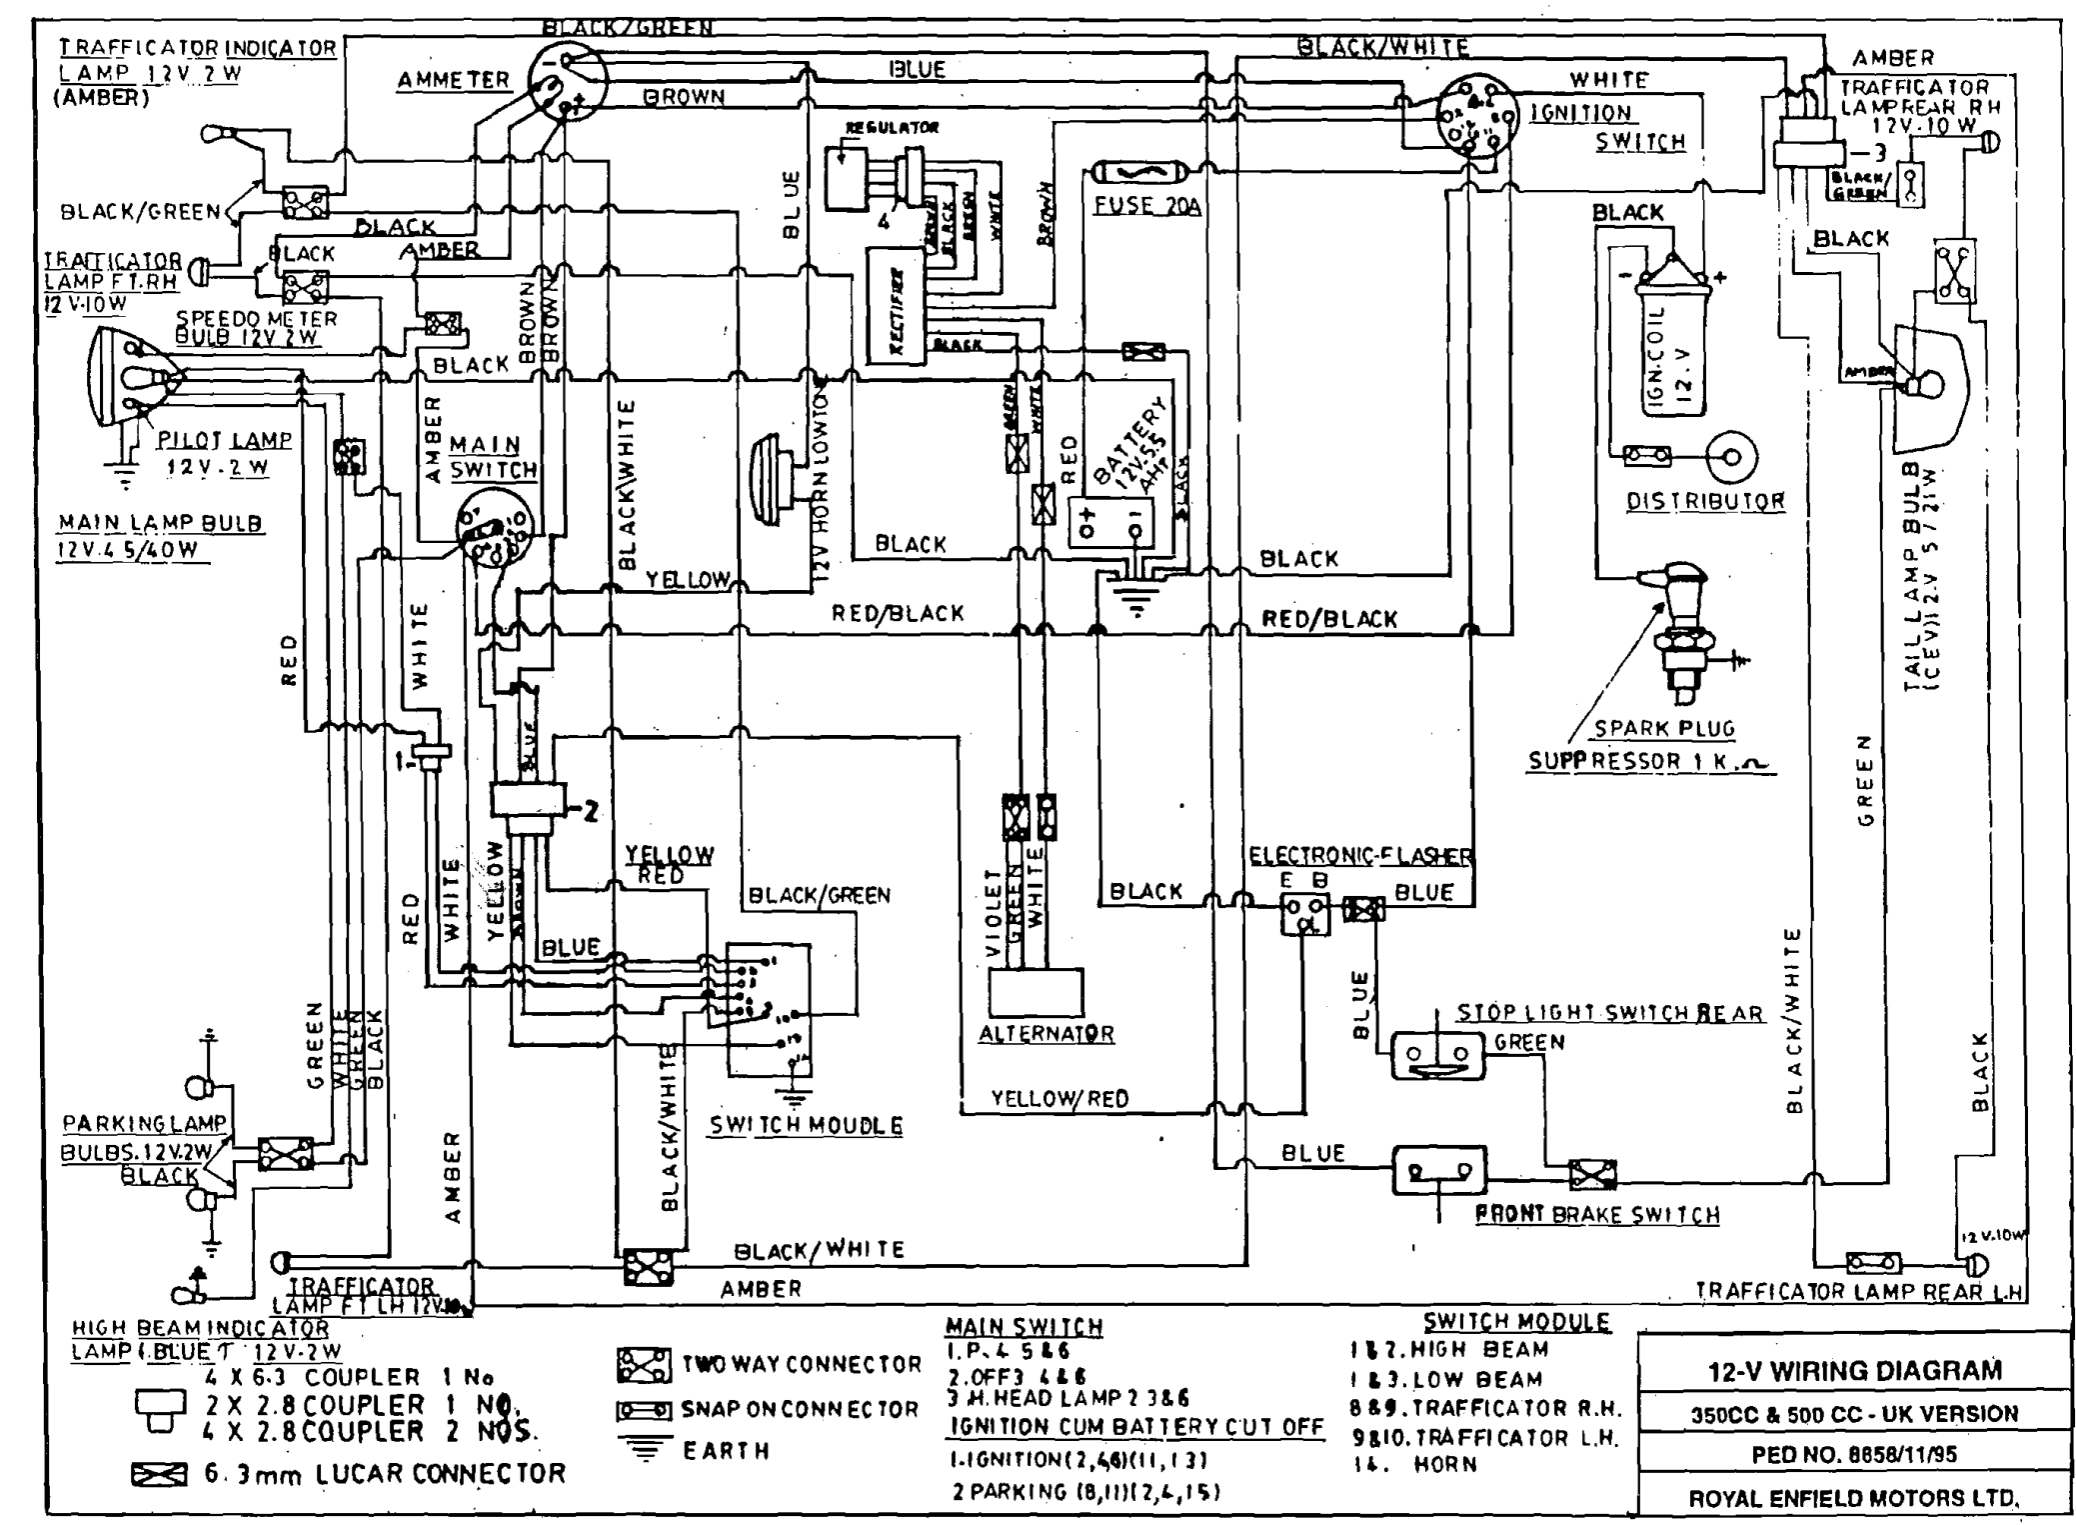 Royal Enfield Bullet 350 Wiring Diagram : 39 Wiring